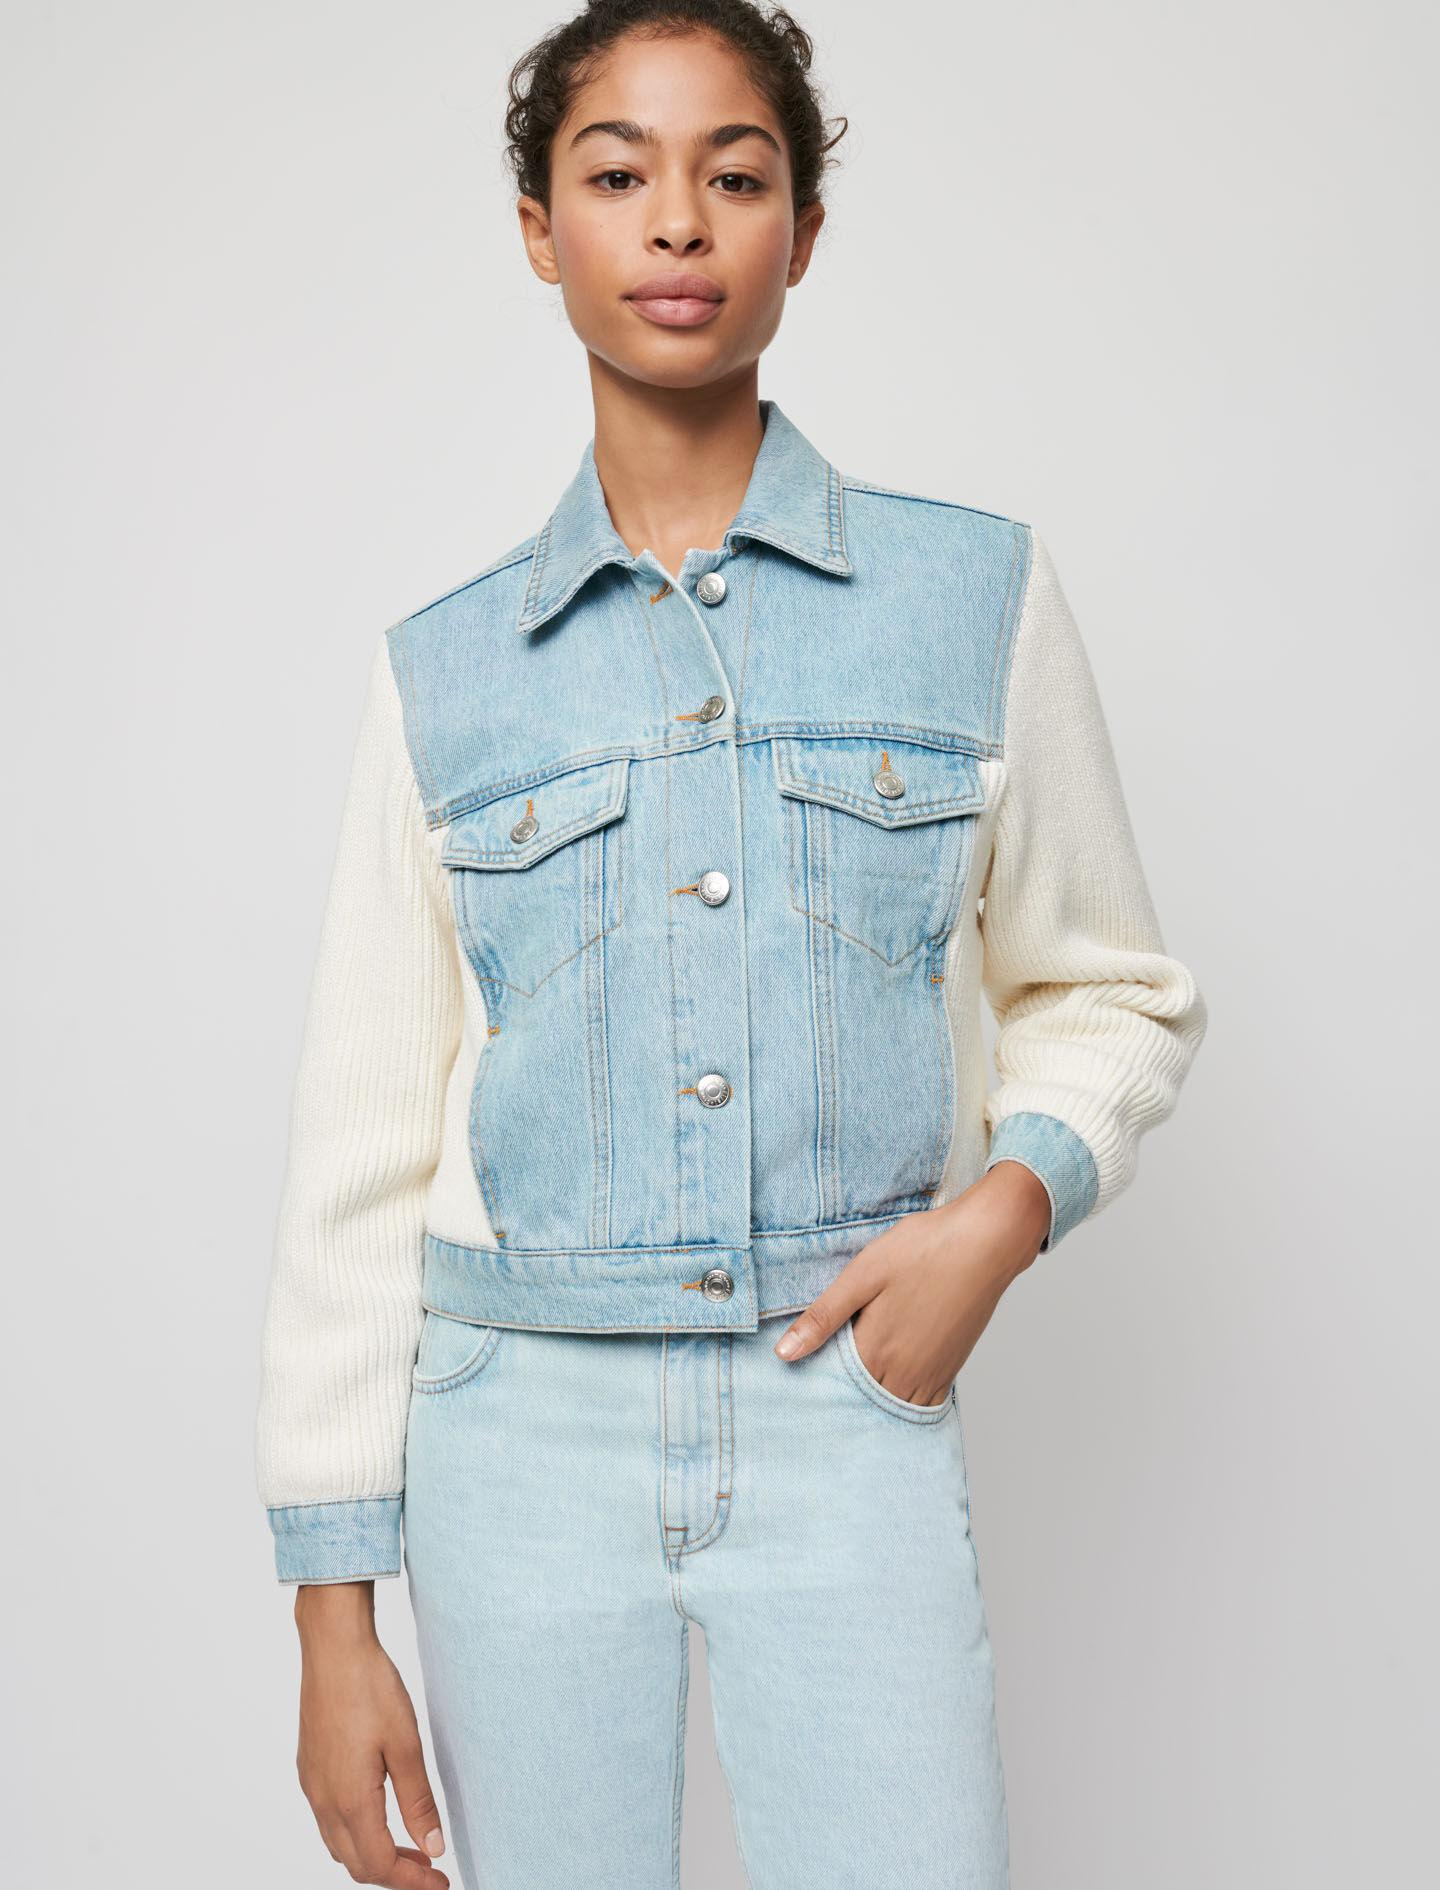 MIXED MATERIAL KNIT AND DENIM JACKET